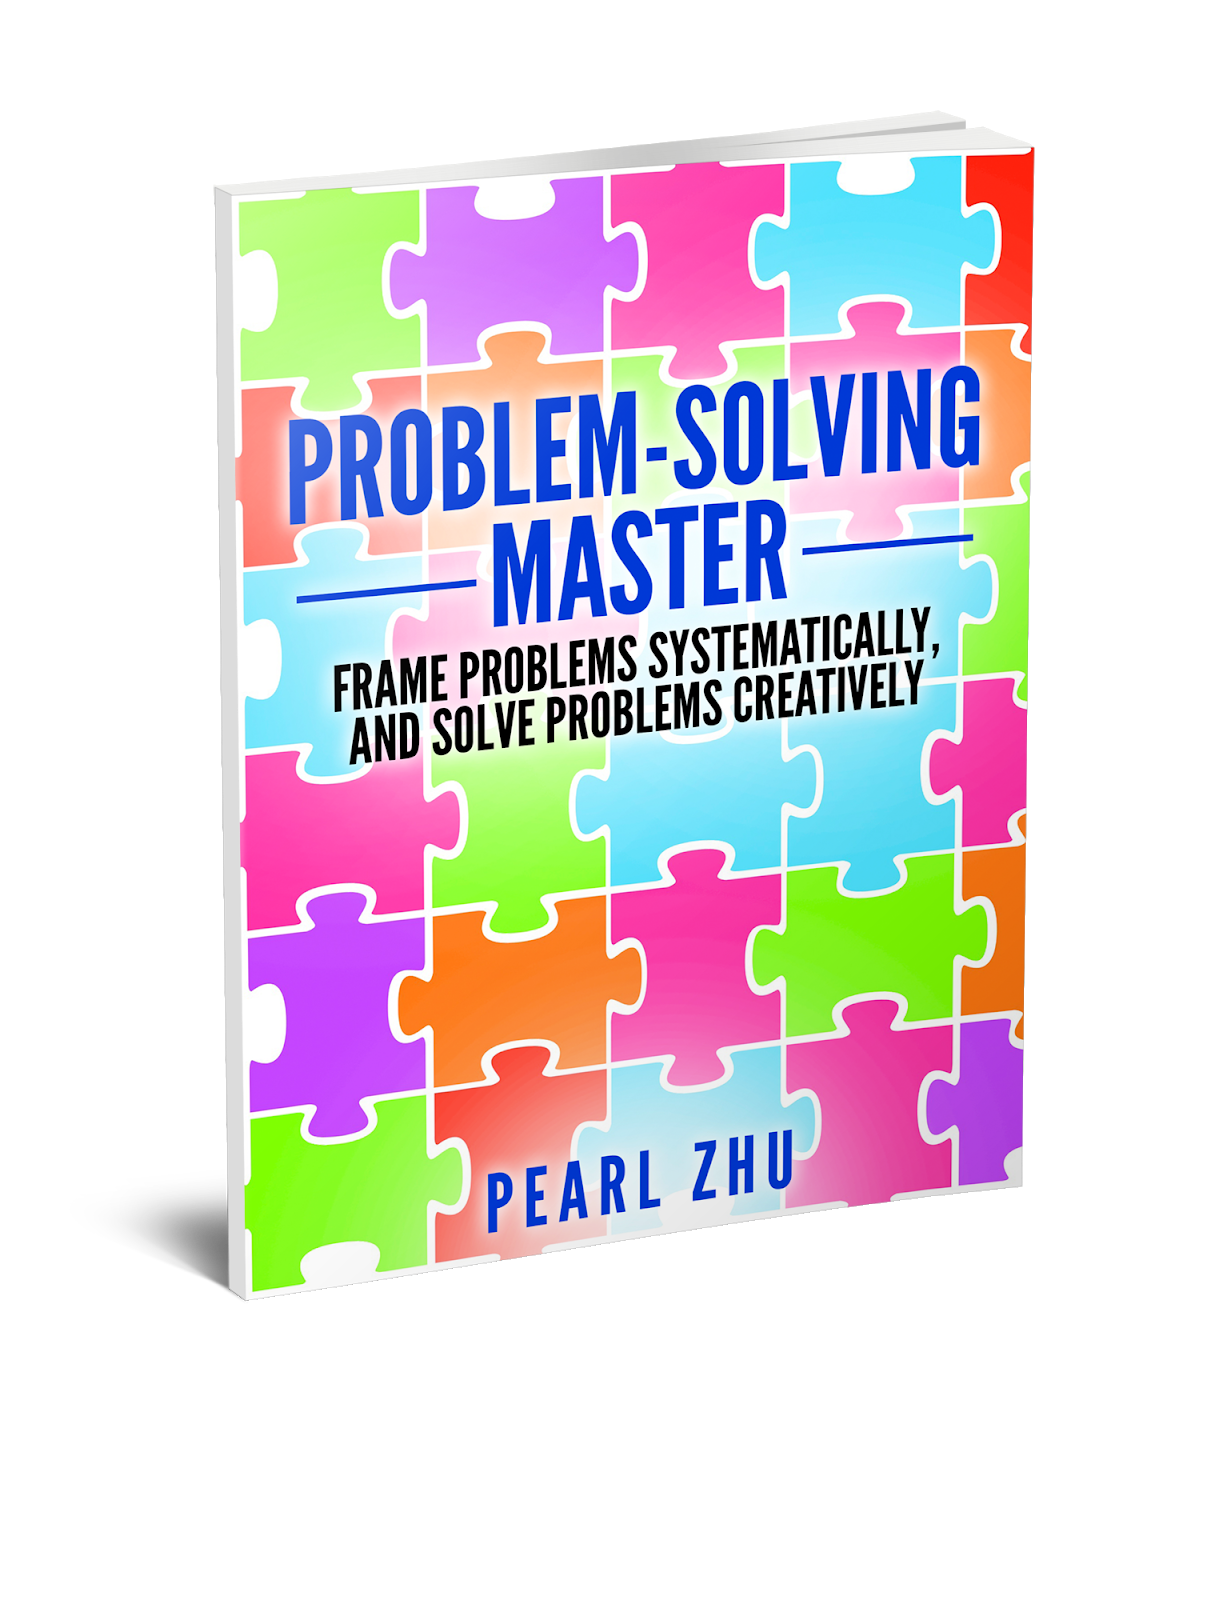 The Problem-Solving Master